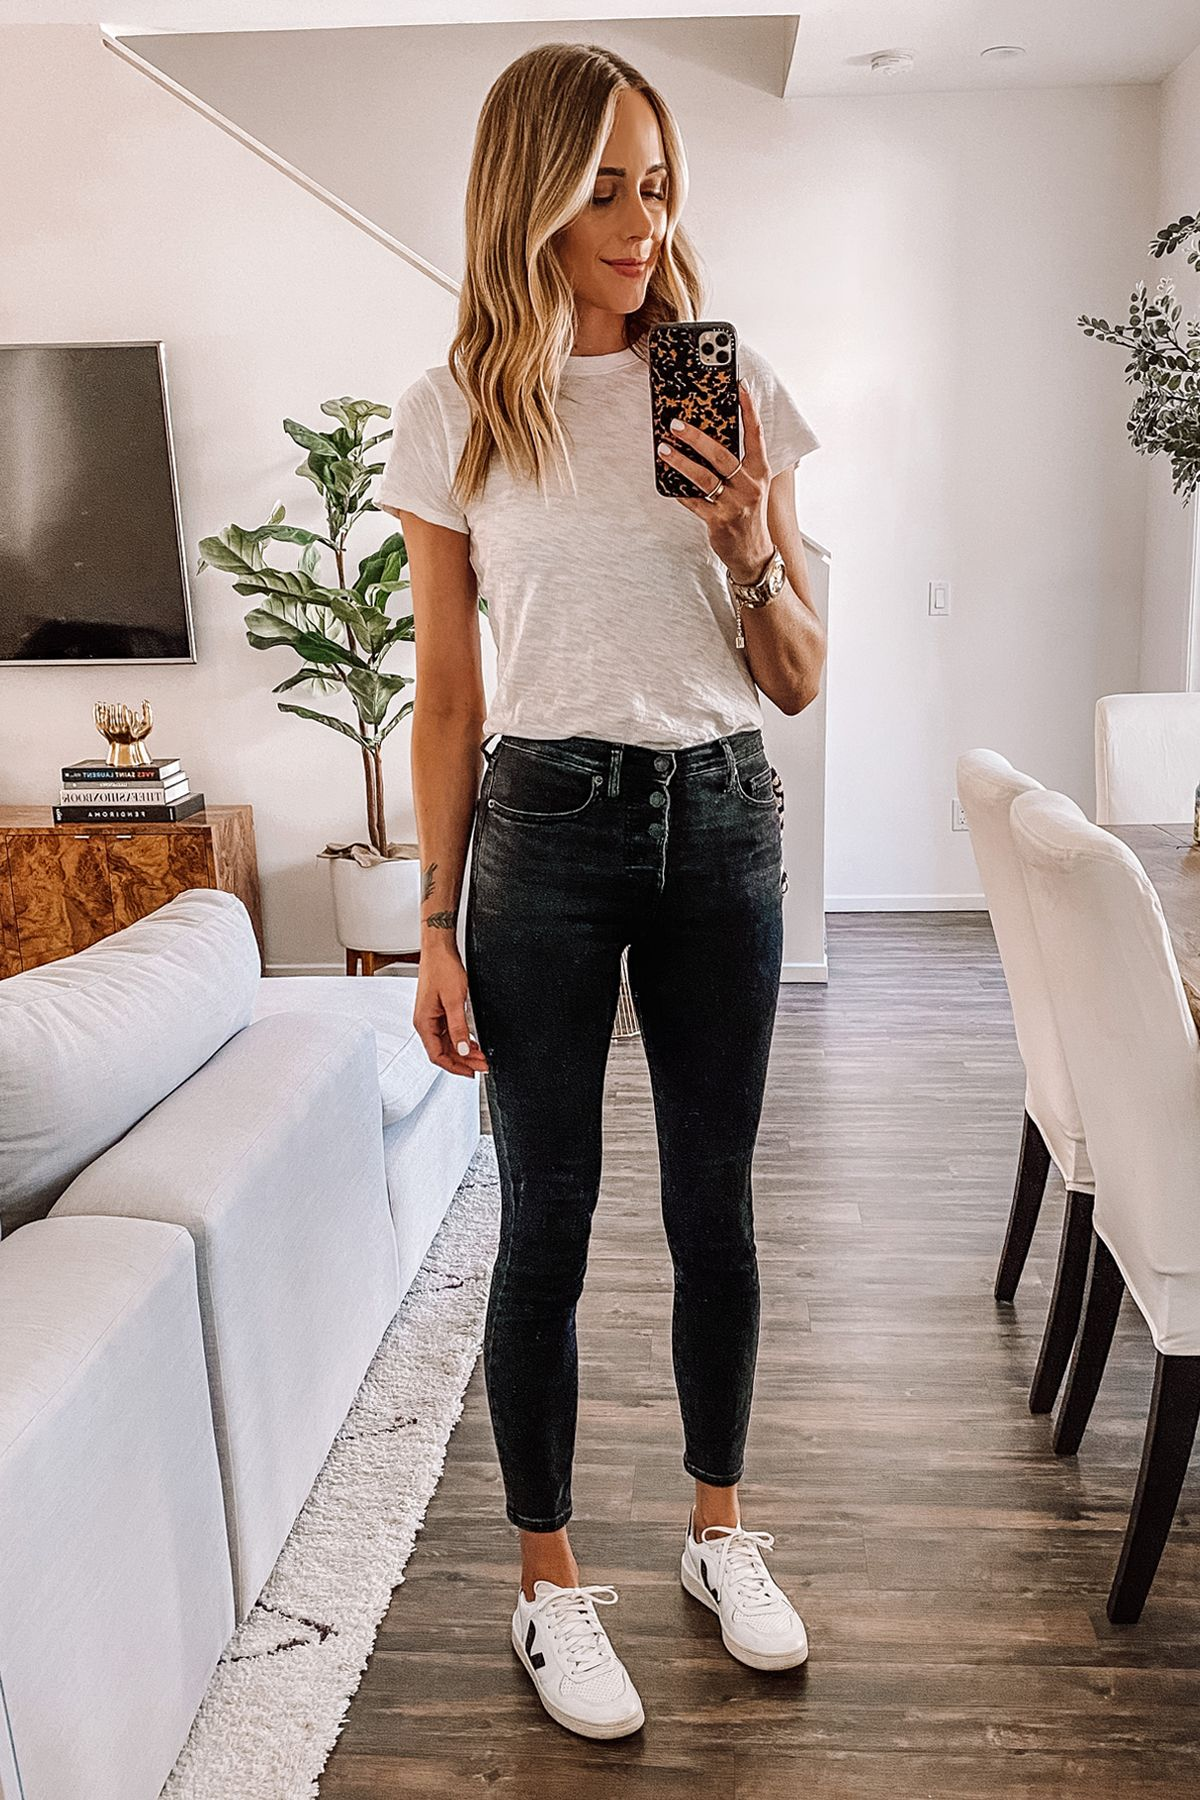 Designed Jeans For Women Skinny Jeans Straight Leg Jeans Mile High Super Skinny Jeans Brown Wide Leg Trousers Ribbed Joggers Topshop Jeans